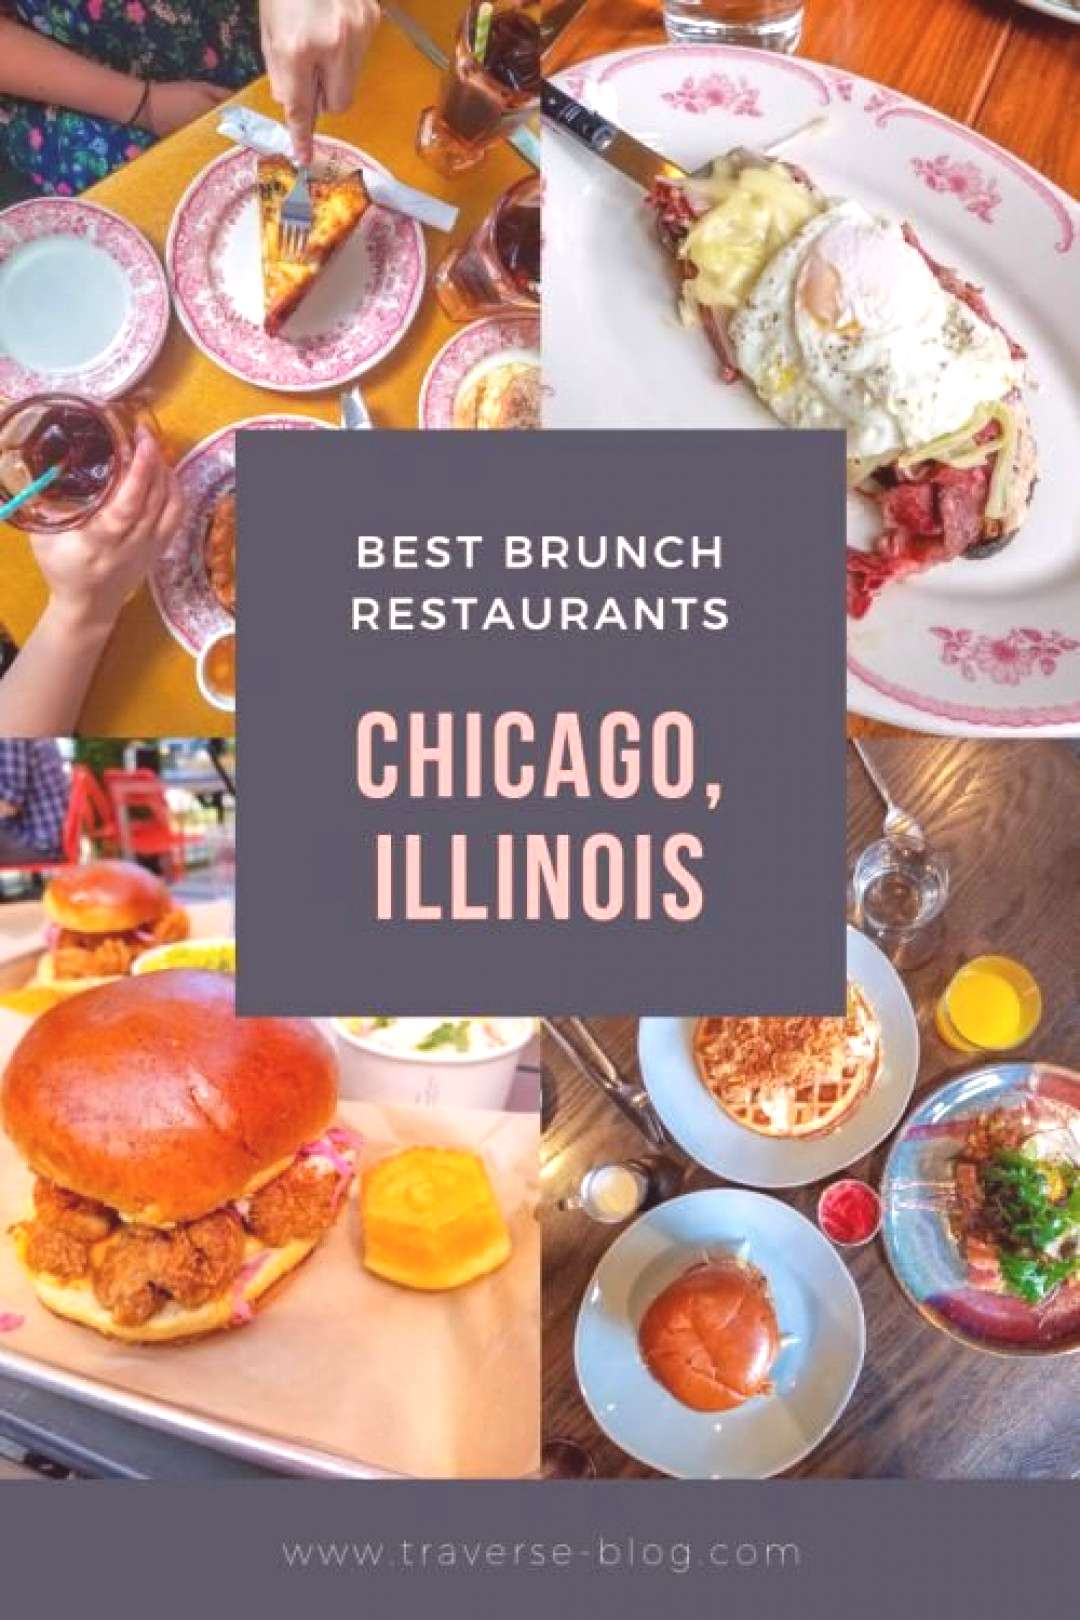 Chicago Brunch Guide 15 Best Breakfast Restaurants in the Windy City. Whether you want pancakes or